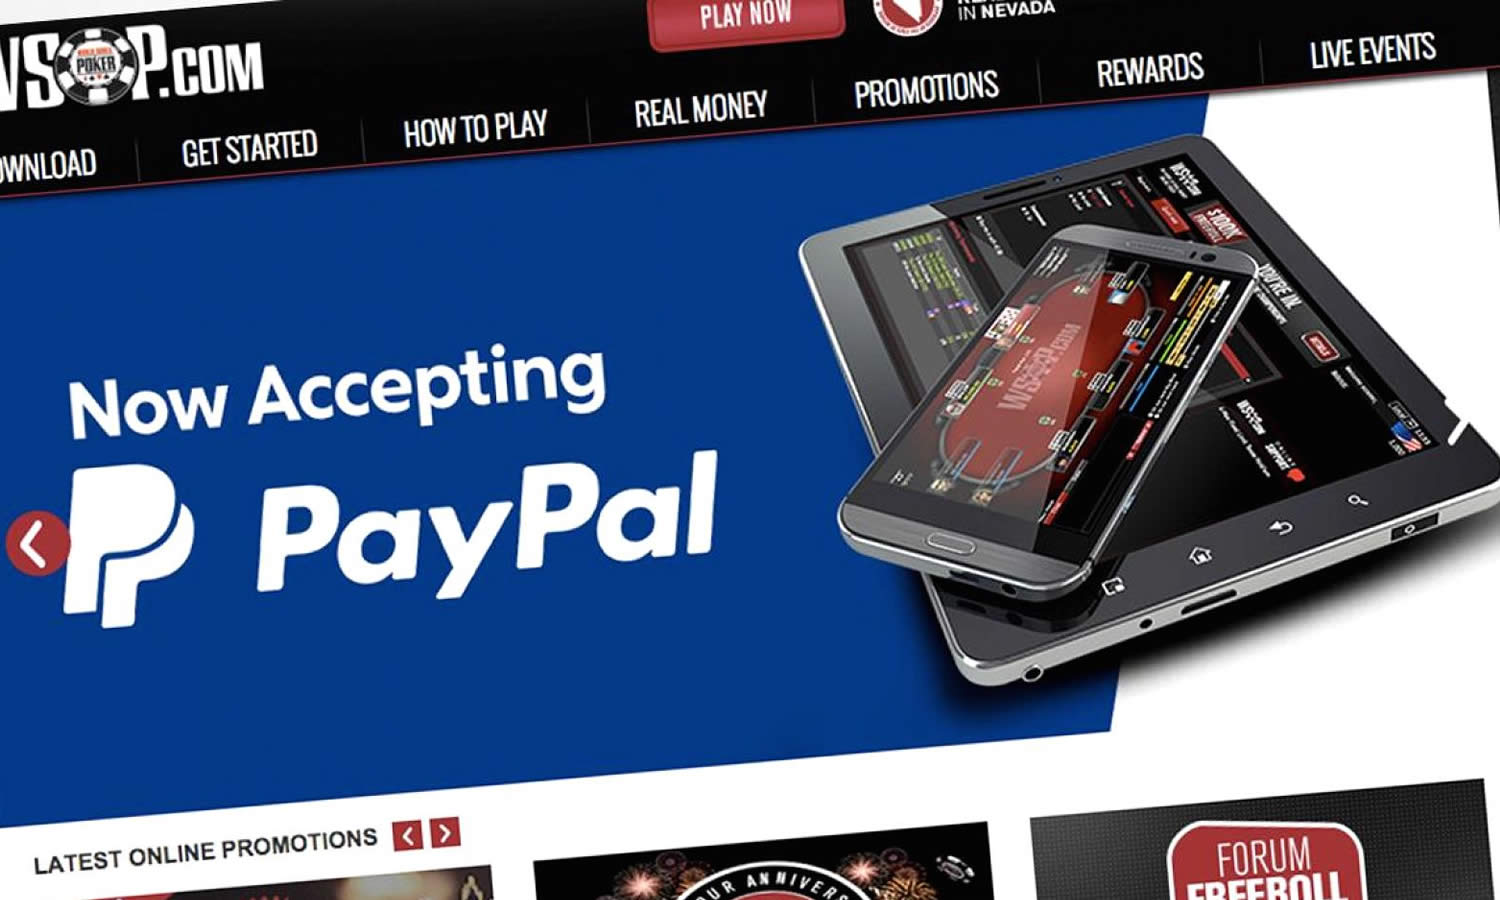 casino online mexico paypal